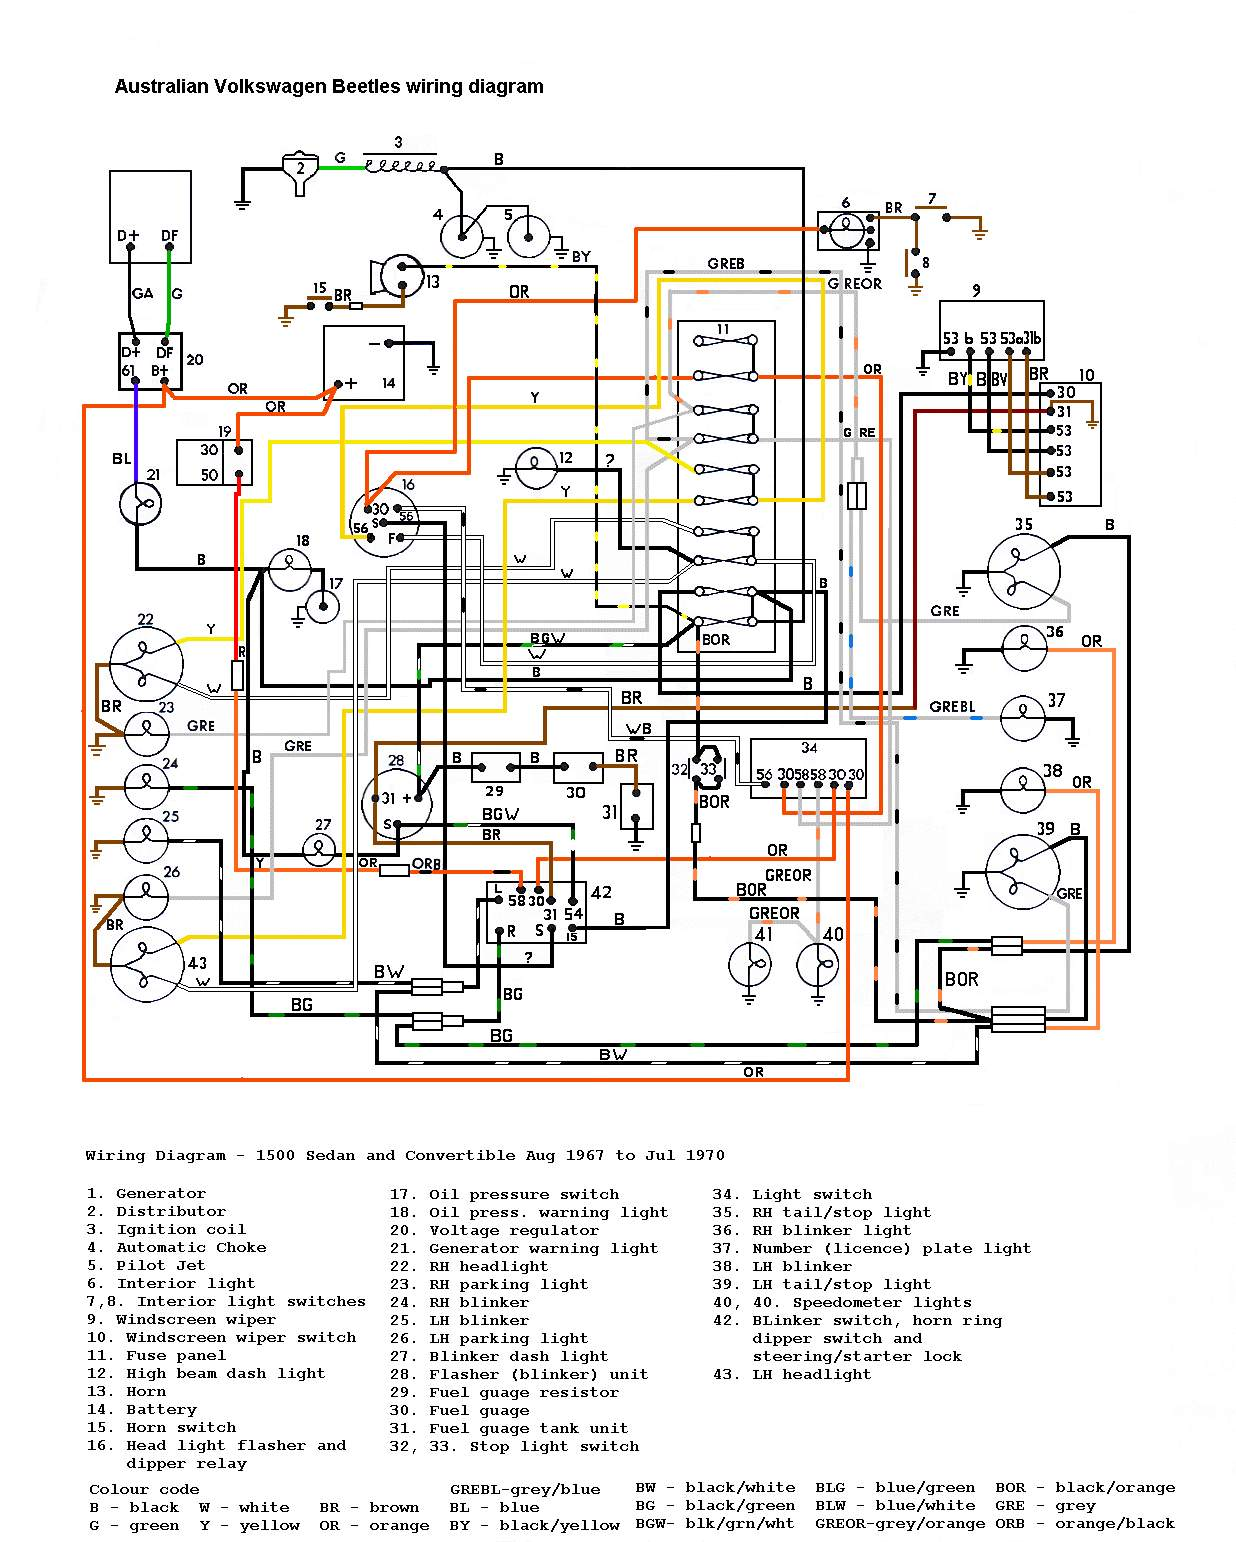 1967 to 1970 Australian VW 1500 Sedan & Convertible wiring diagram ...